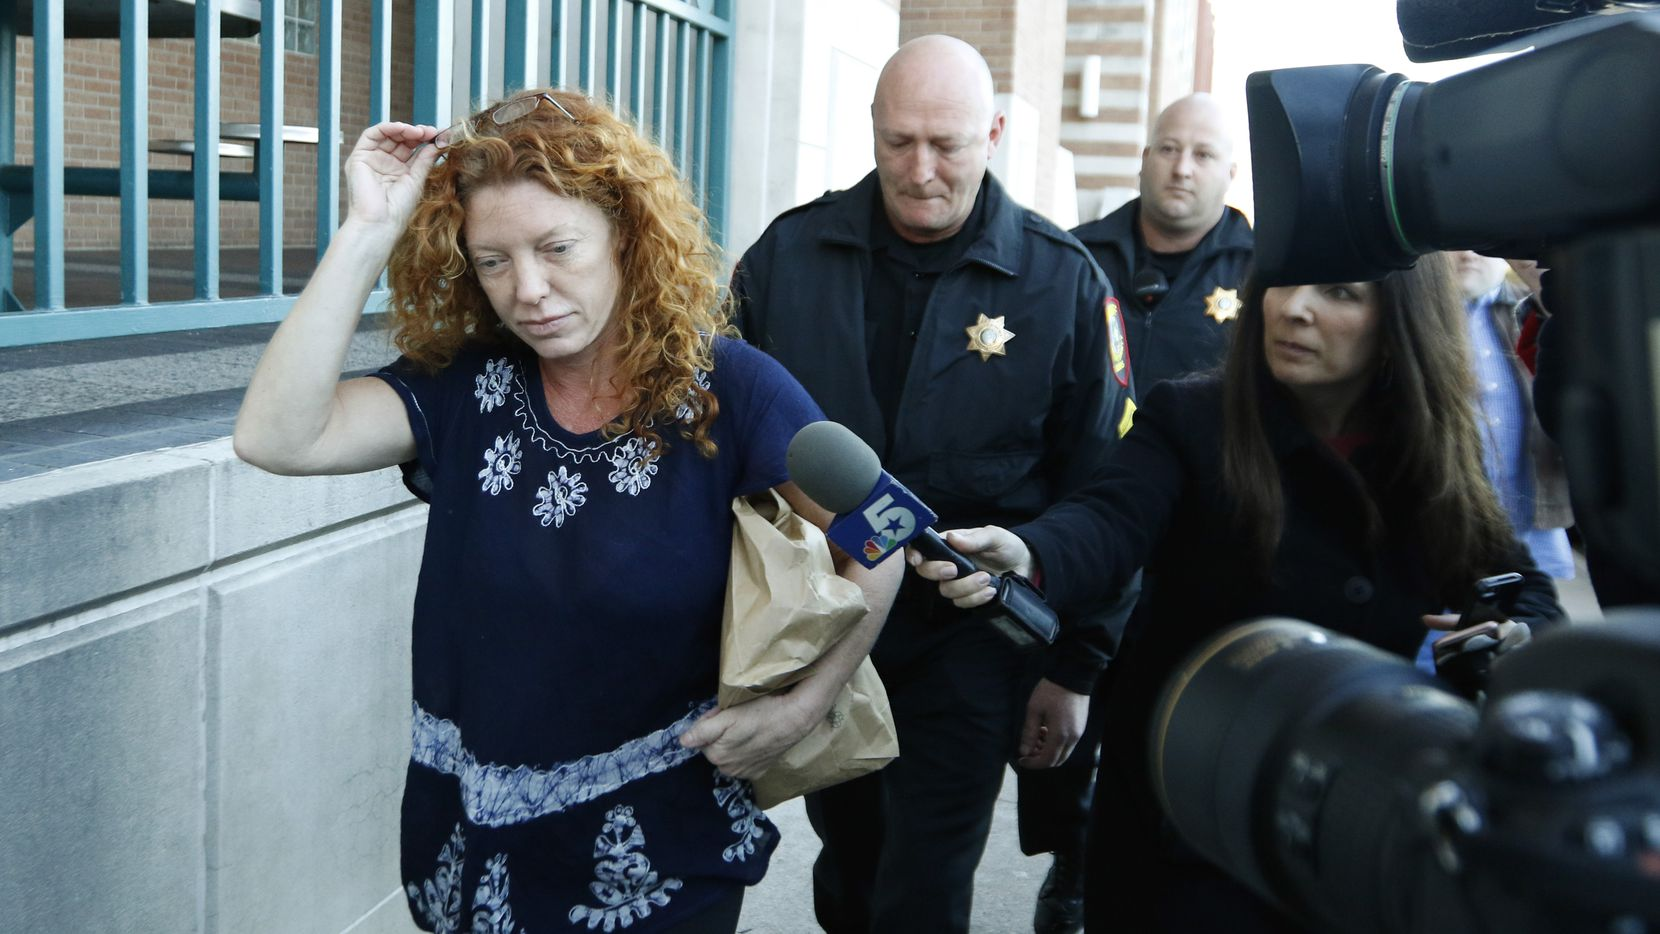 Tonya Couch in 2016, when her bond was reduced from $1 million to $75,000.